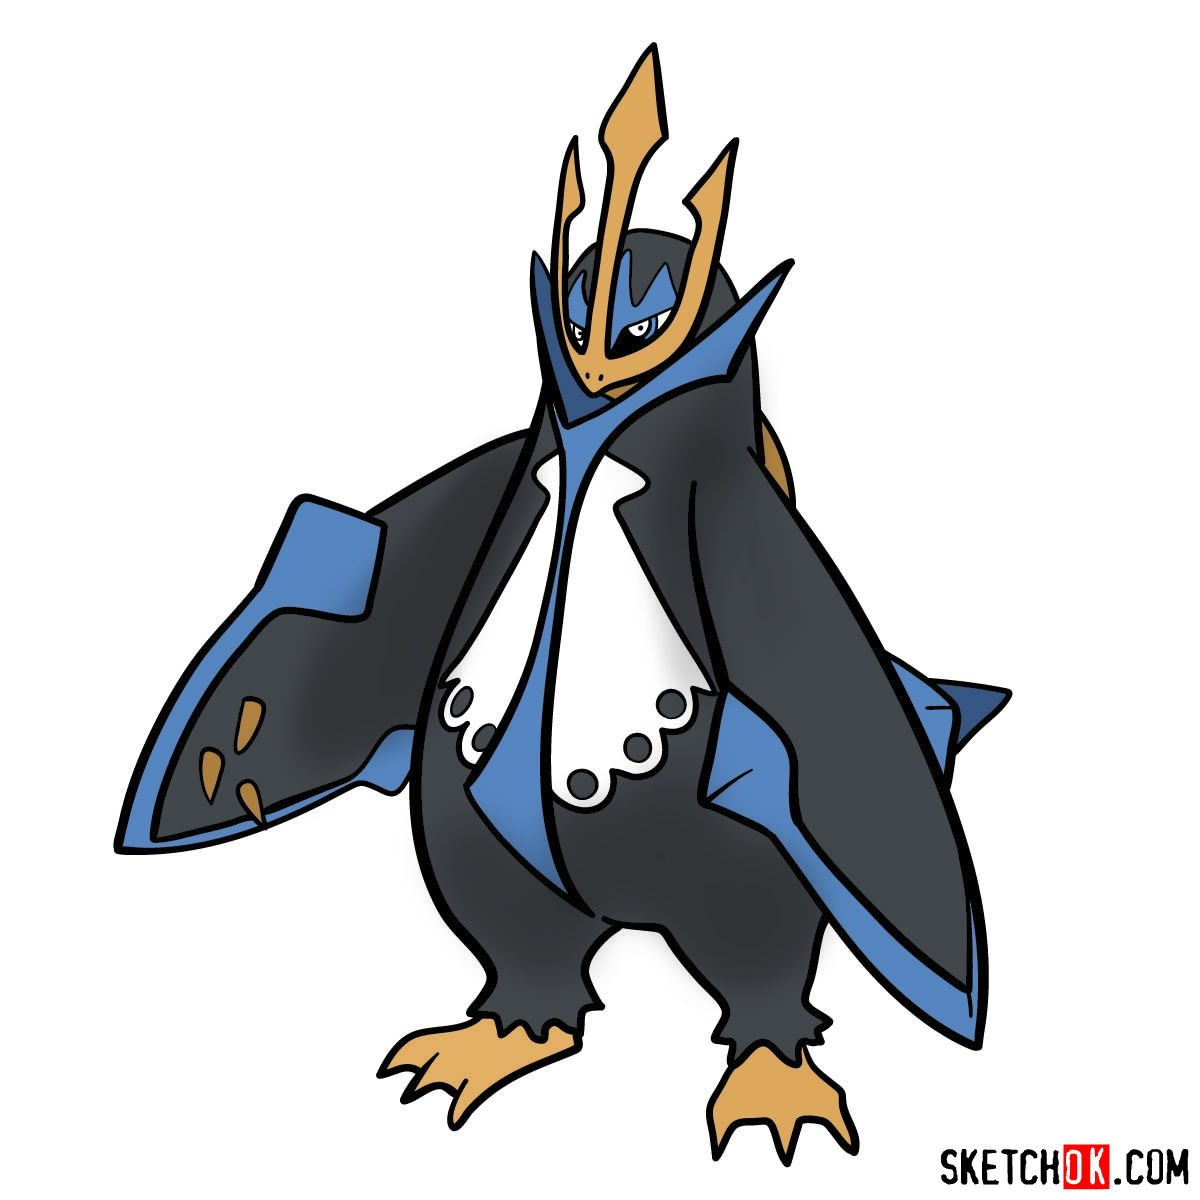 How to draw Empoleon Pokemon